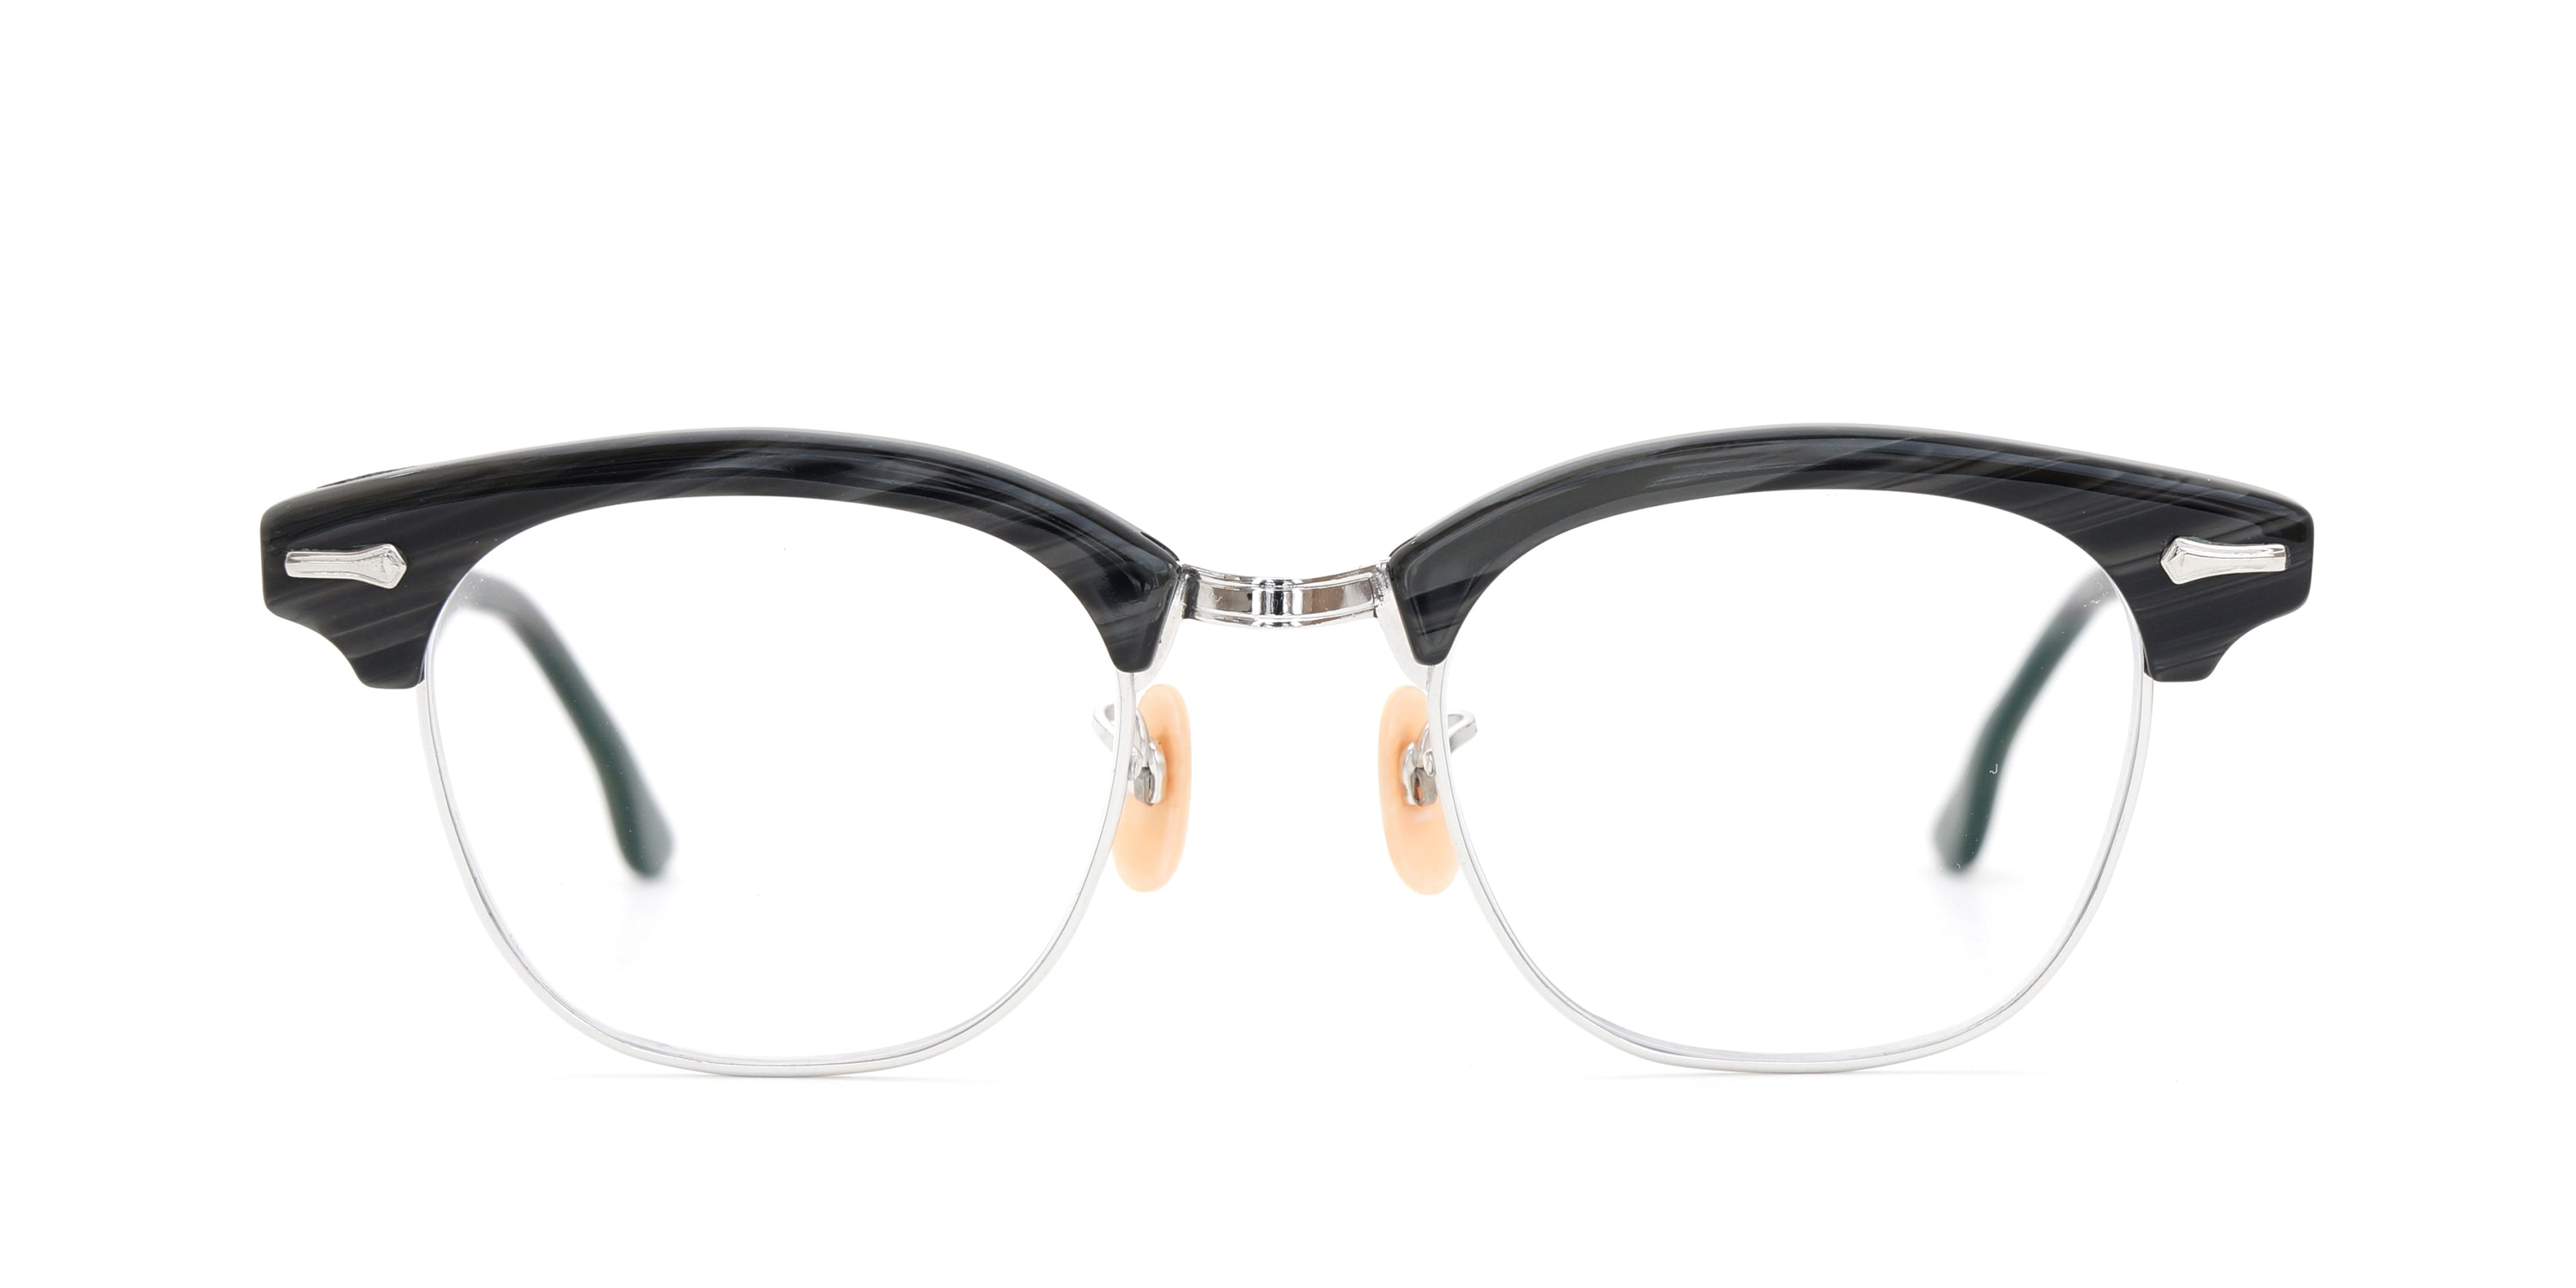 The Spectacle メガネ 1950s-1960s SHURON RONSIR Black-Stone WG 1/10 12KGF 46/20 2